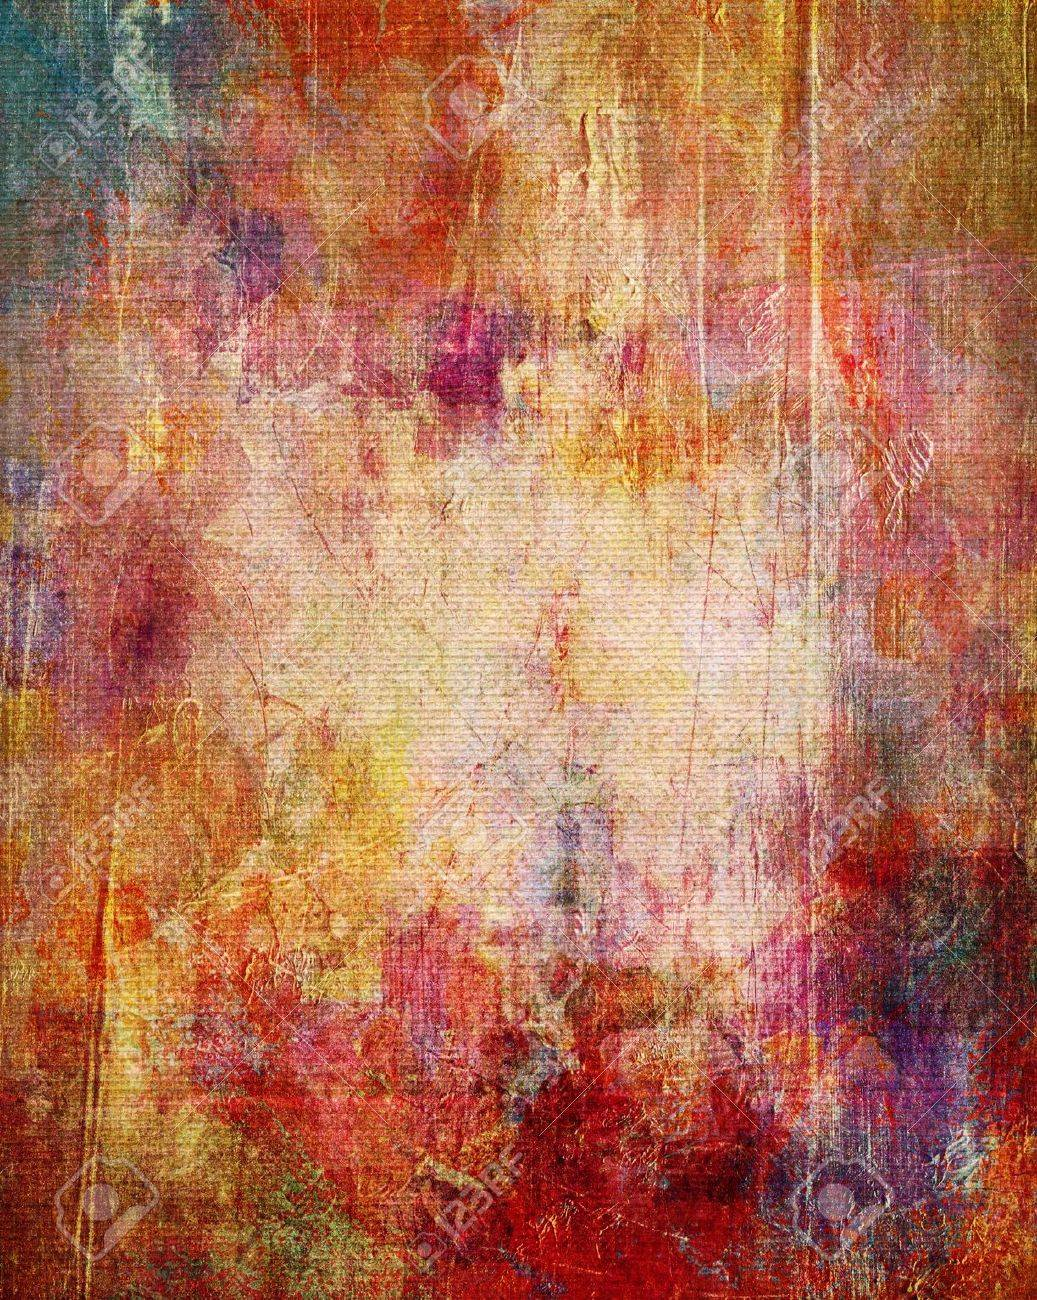 Paint Textures On Canvas Structure Mixed Media Stock Photo